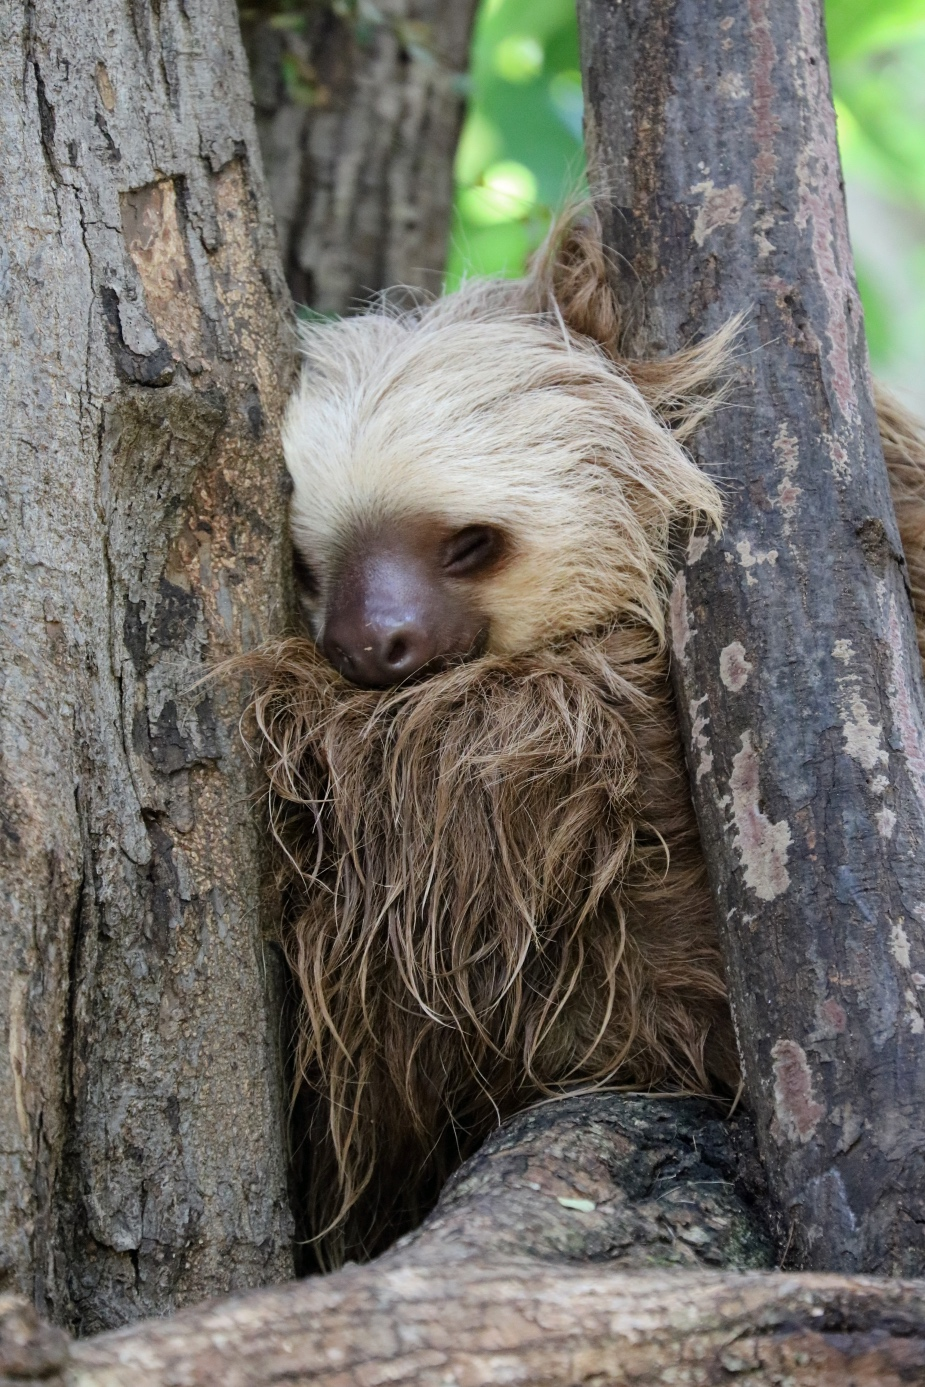 sloth sanctuary costa rica | visit and see two toed sloth rescued